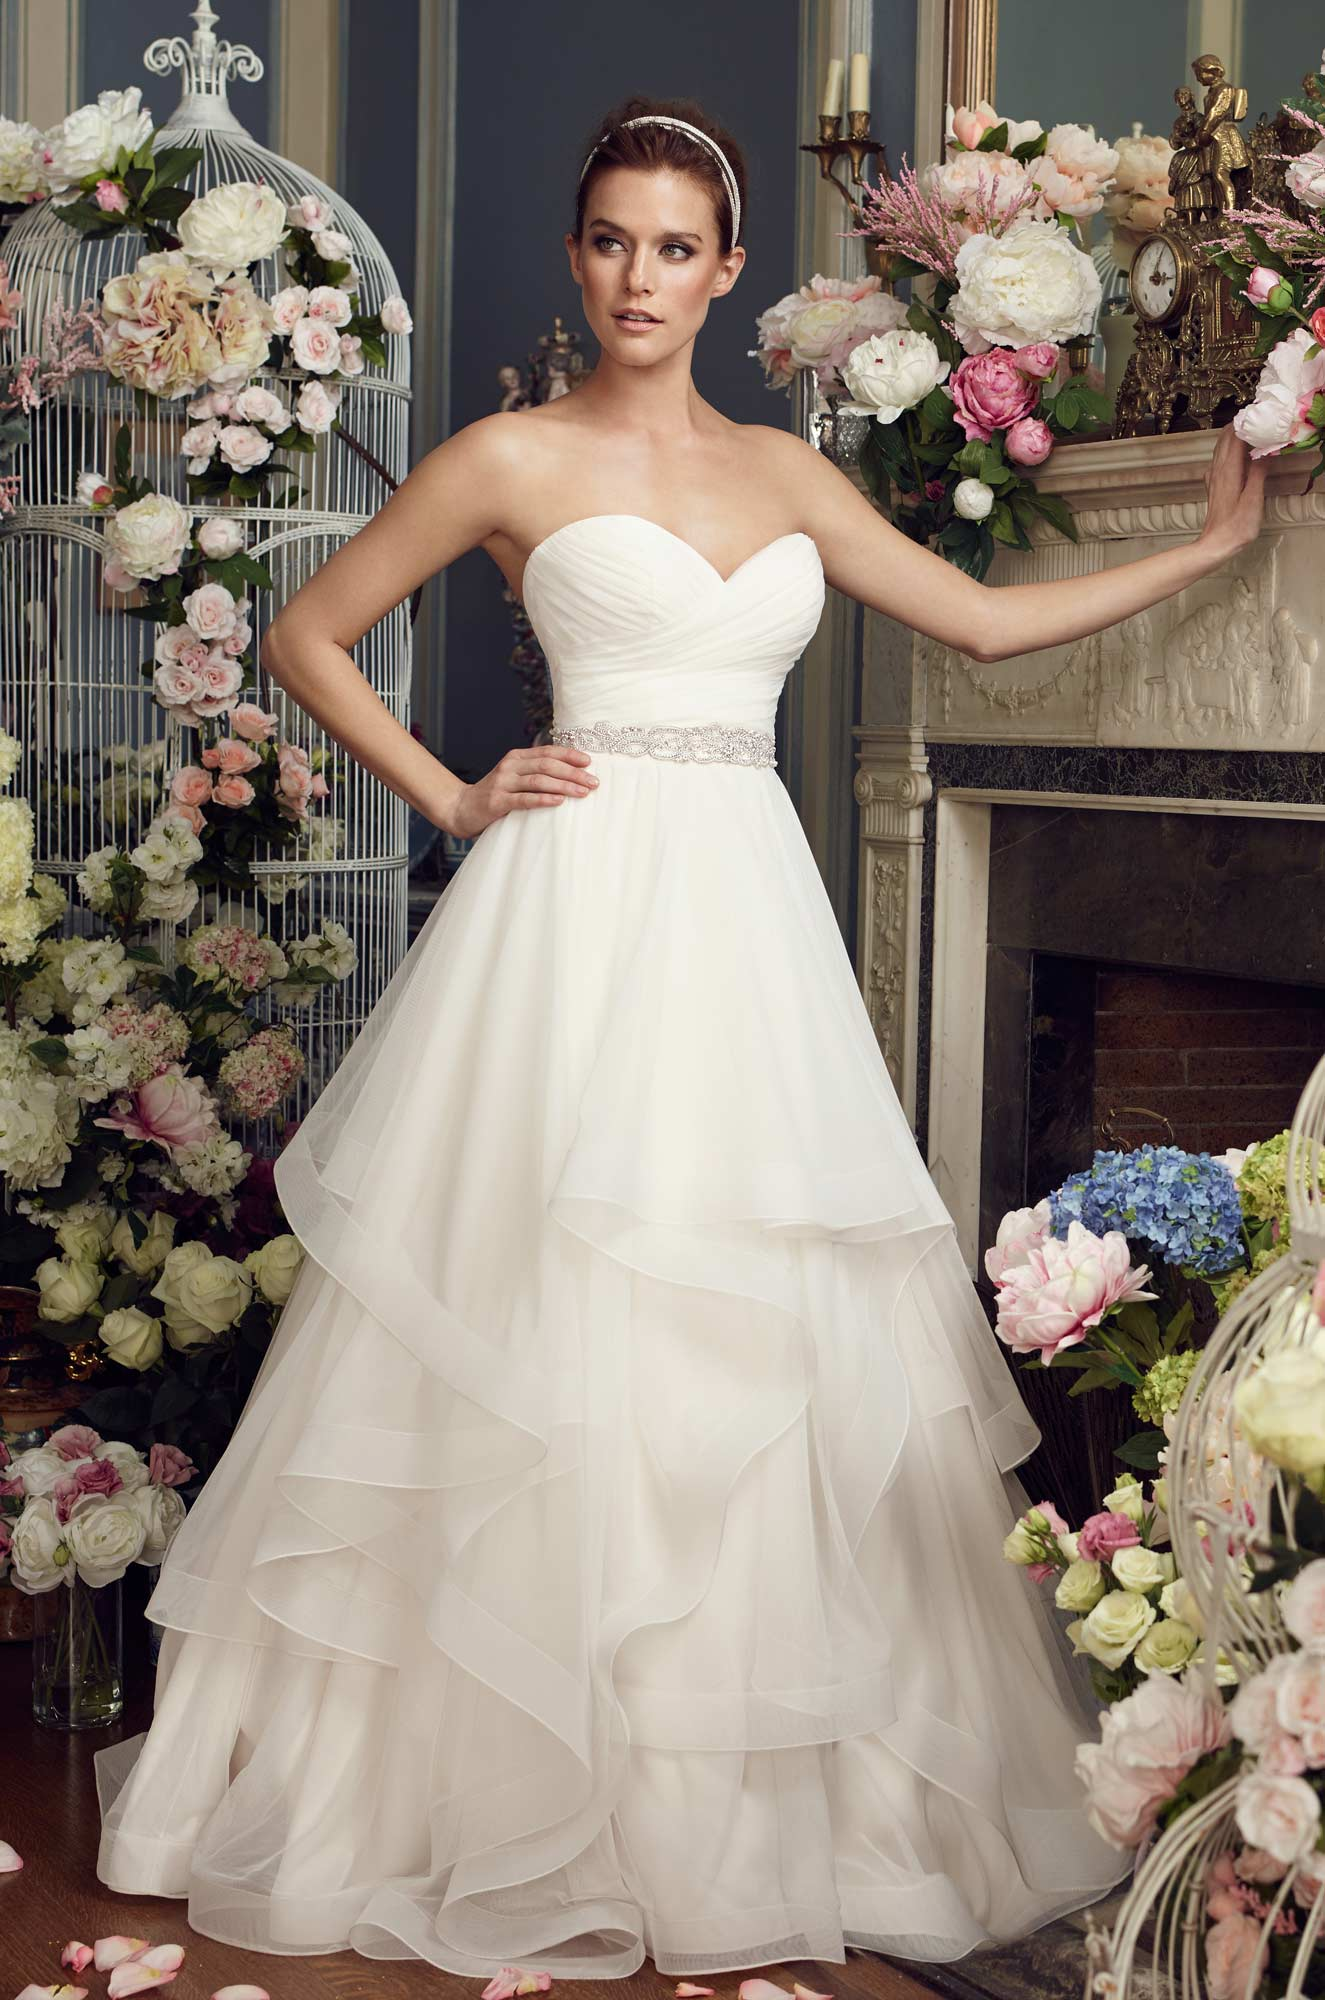 b1b2f79d082 Whimsical Tiered Wedding Dress - Style  2164